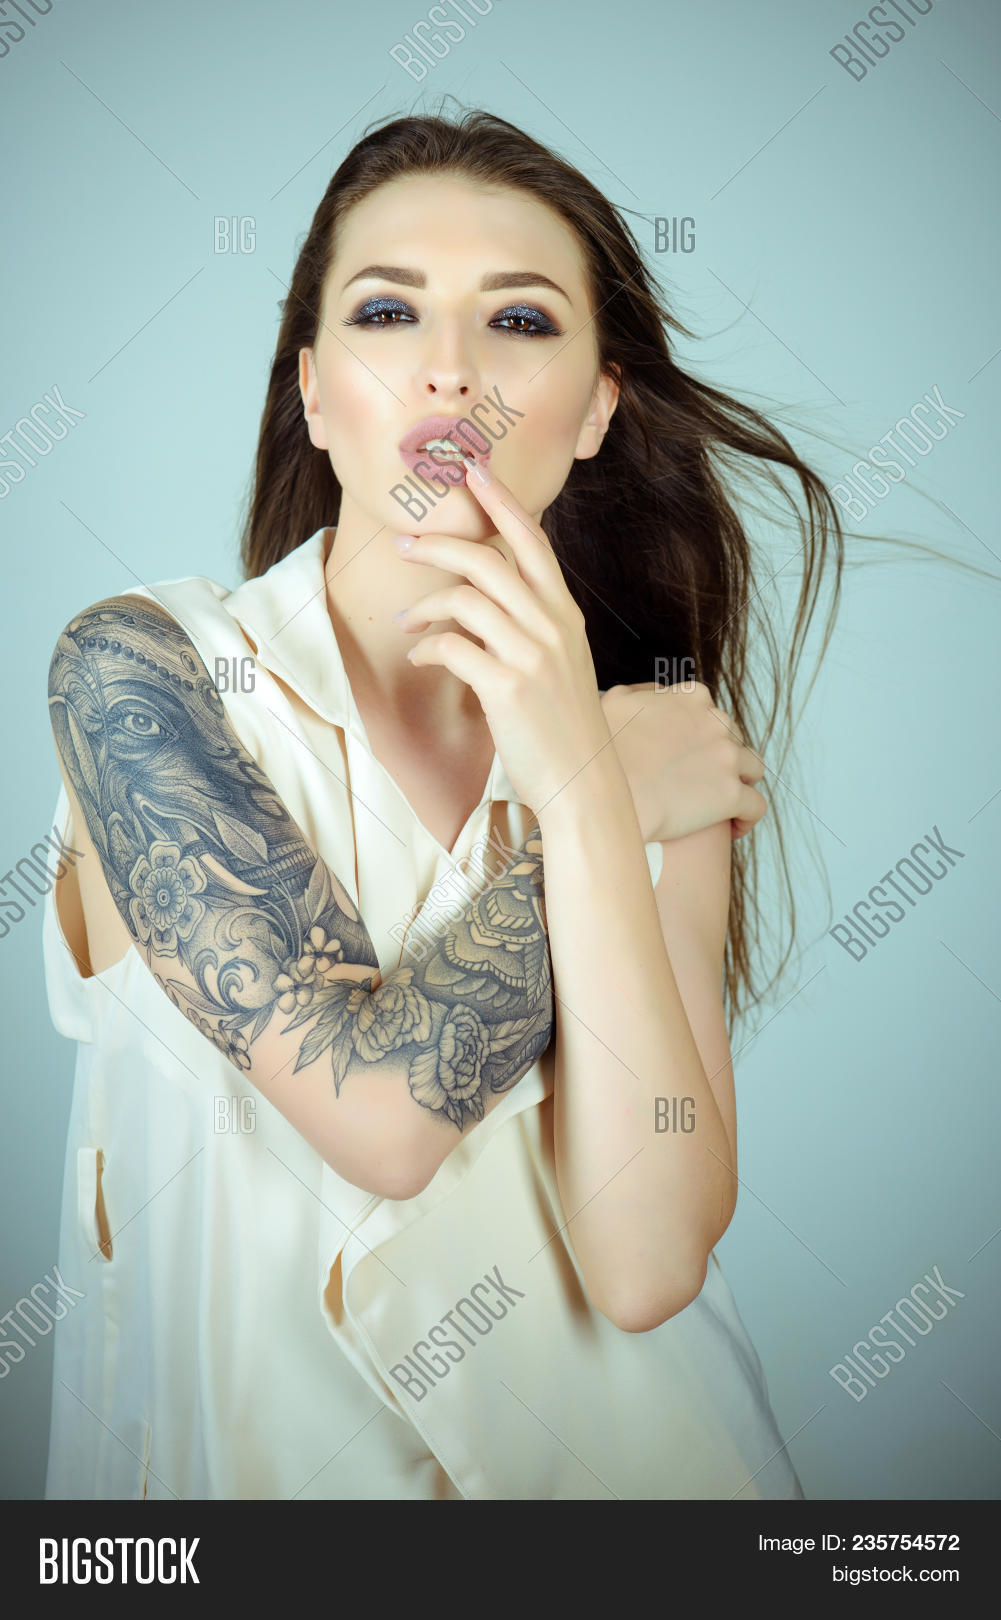 Skincare Body Art Image Photo Free Trial Bigstock